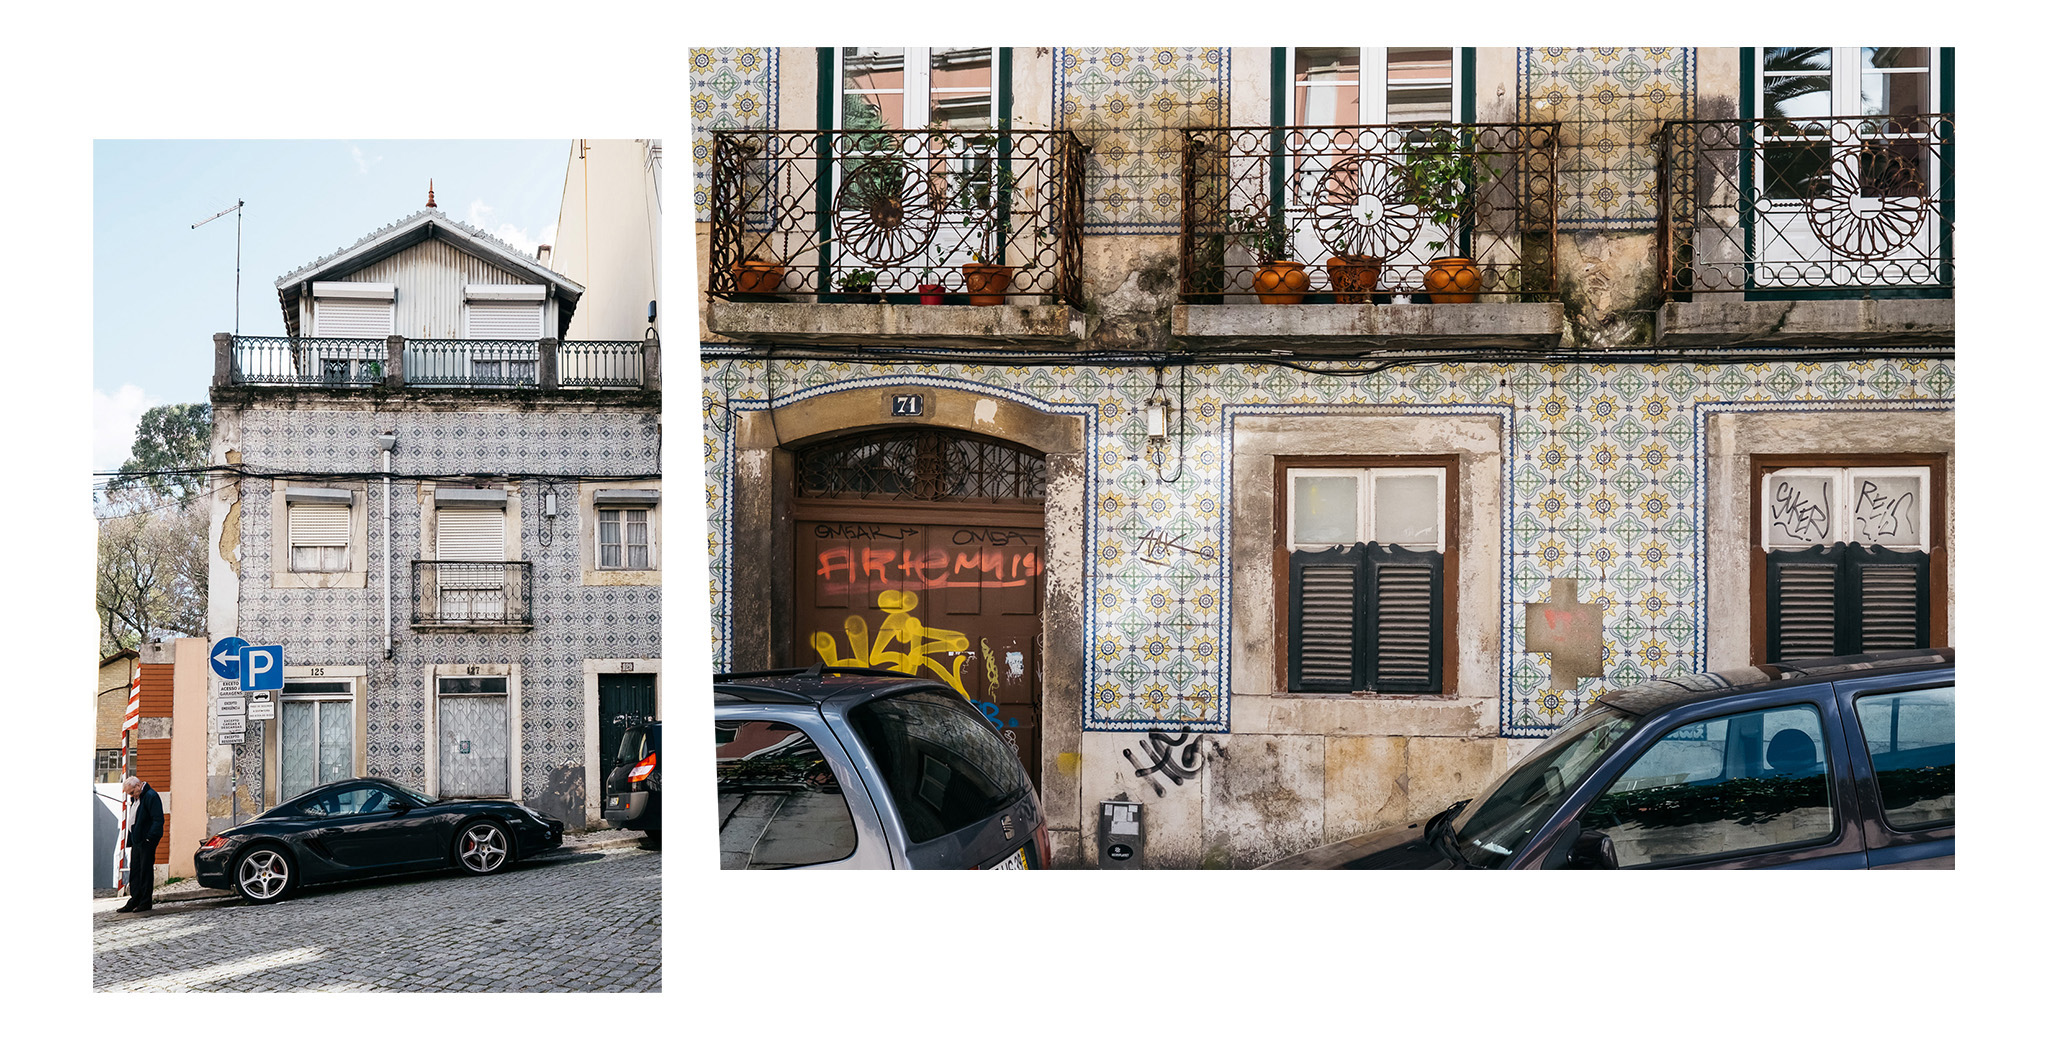 The Lisbon streets are littered with beautifully colourful Portugese tiles